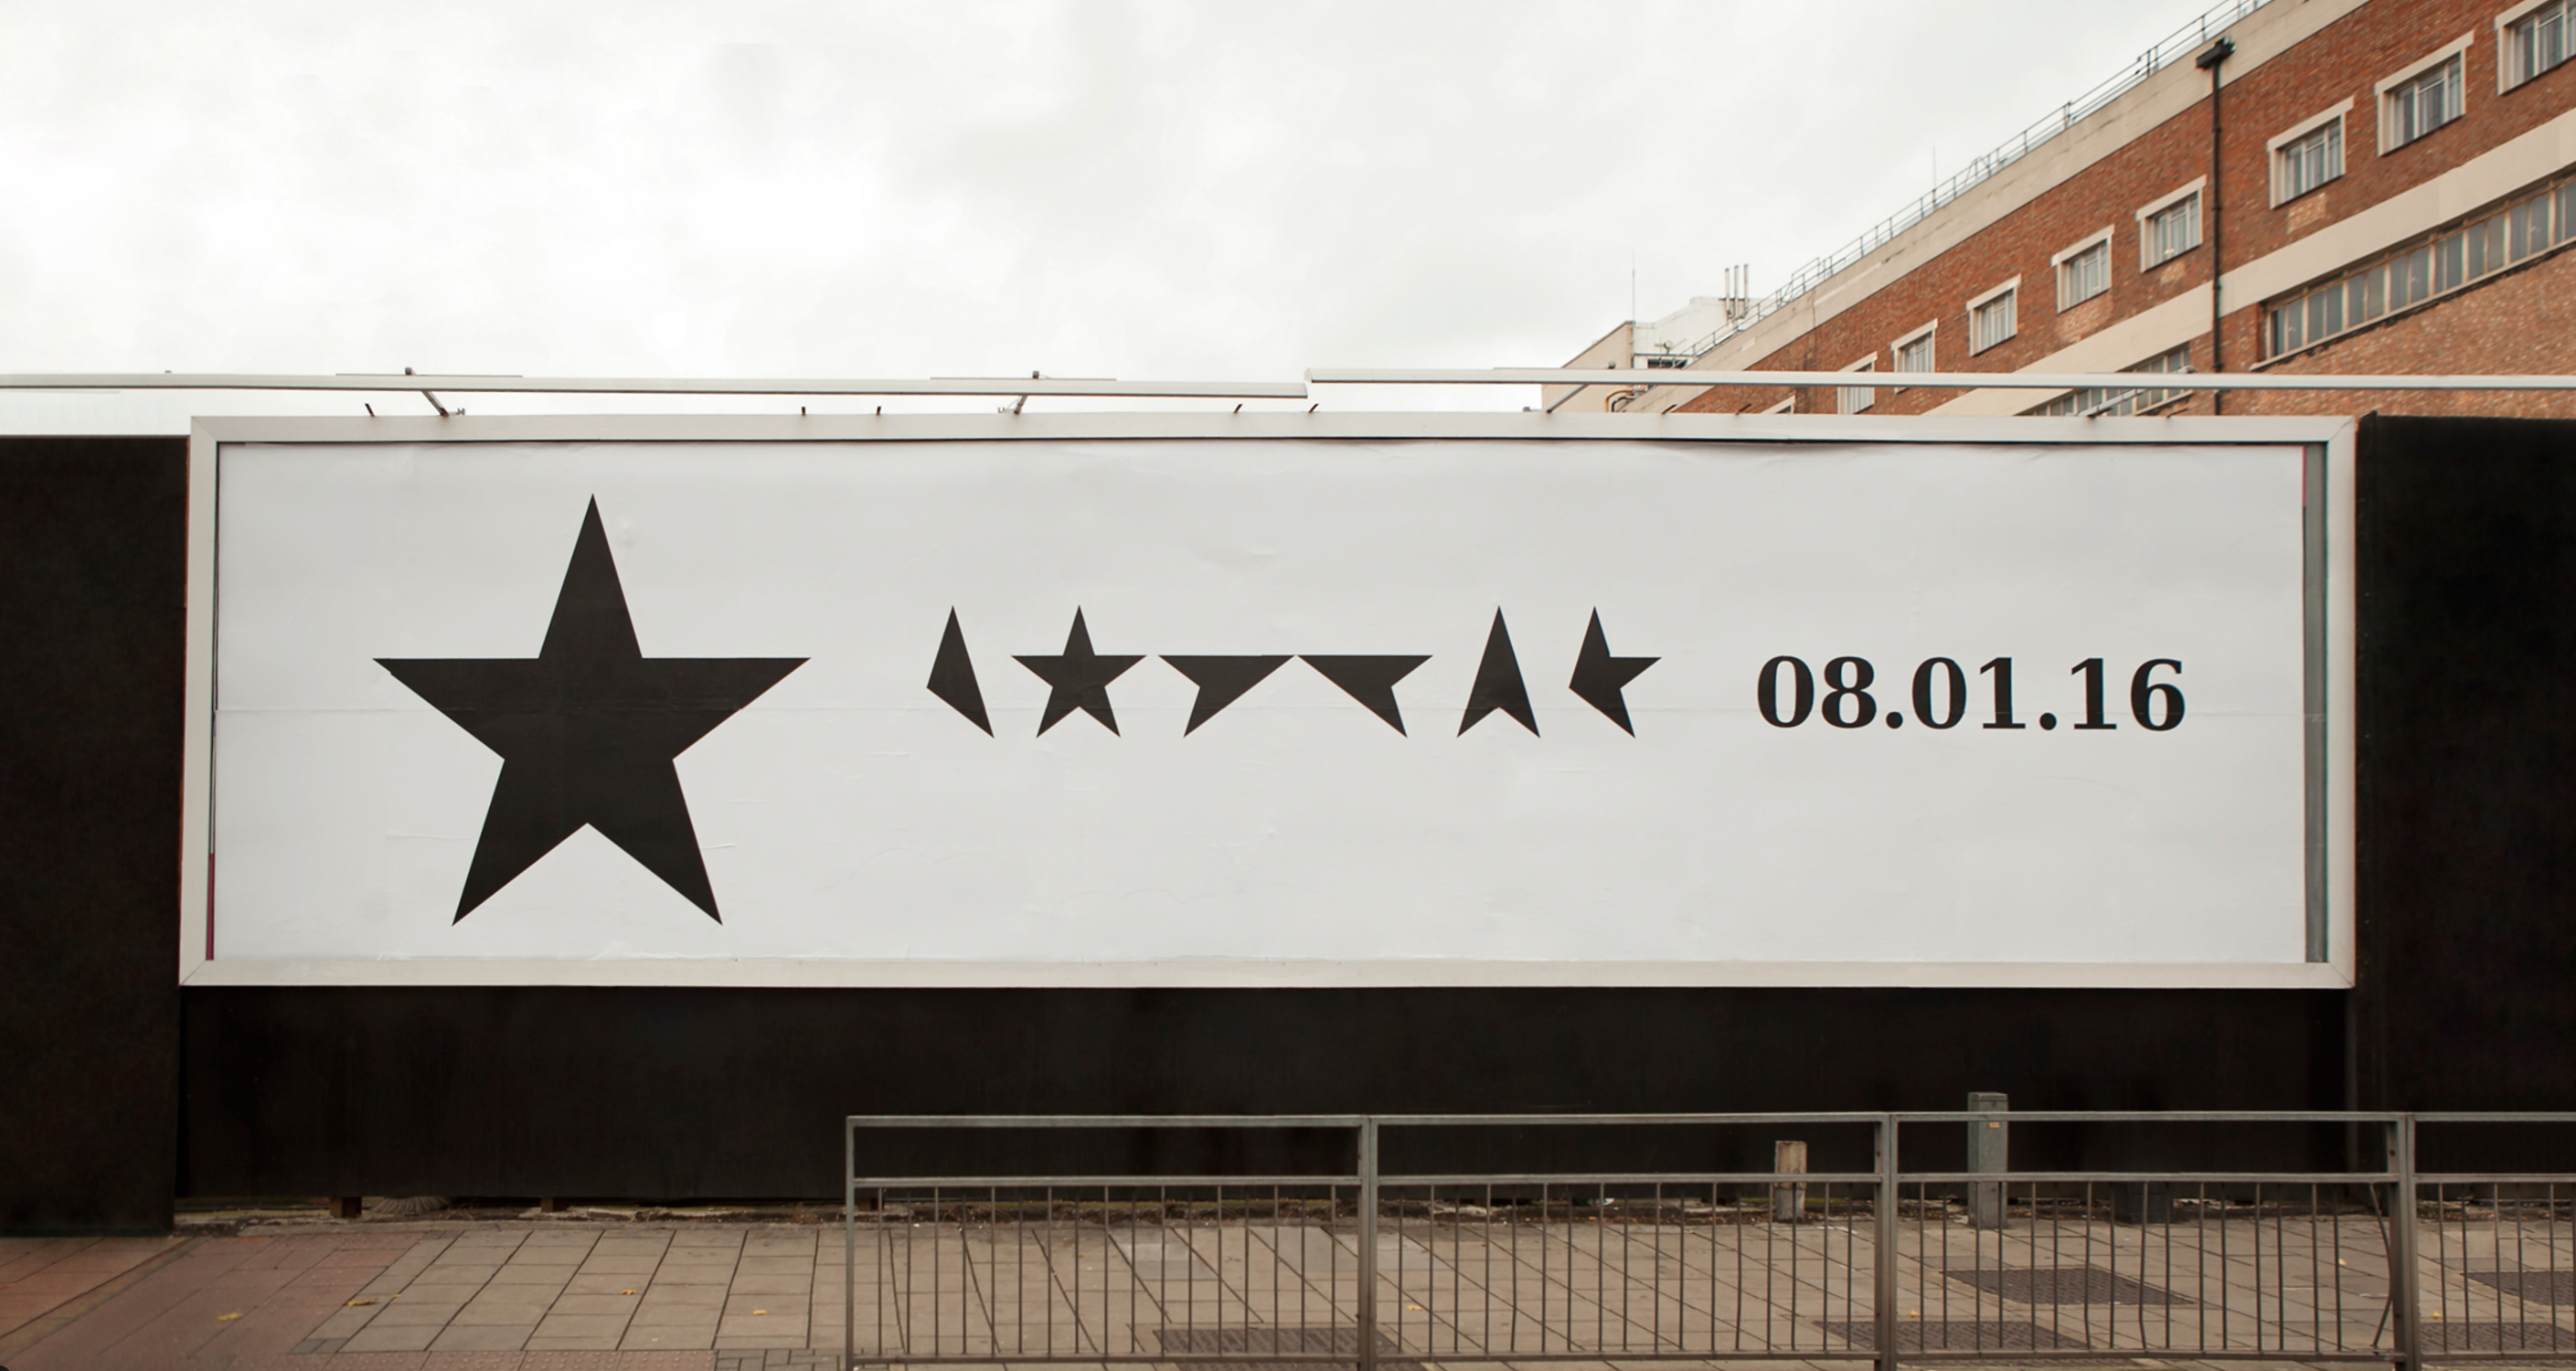 First billboard announcing the album release of David Bowie's ★ (Blackstar) in 2016, designed by Barnbrook. (Image source: [barnbrook.net](http://www.barnbrook.net/work/david-bowie-blackstar/))